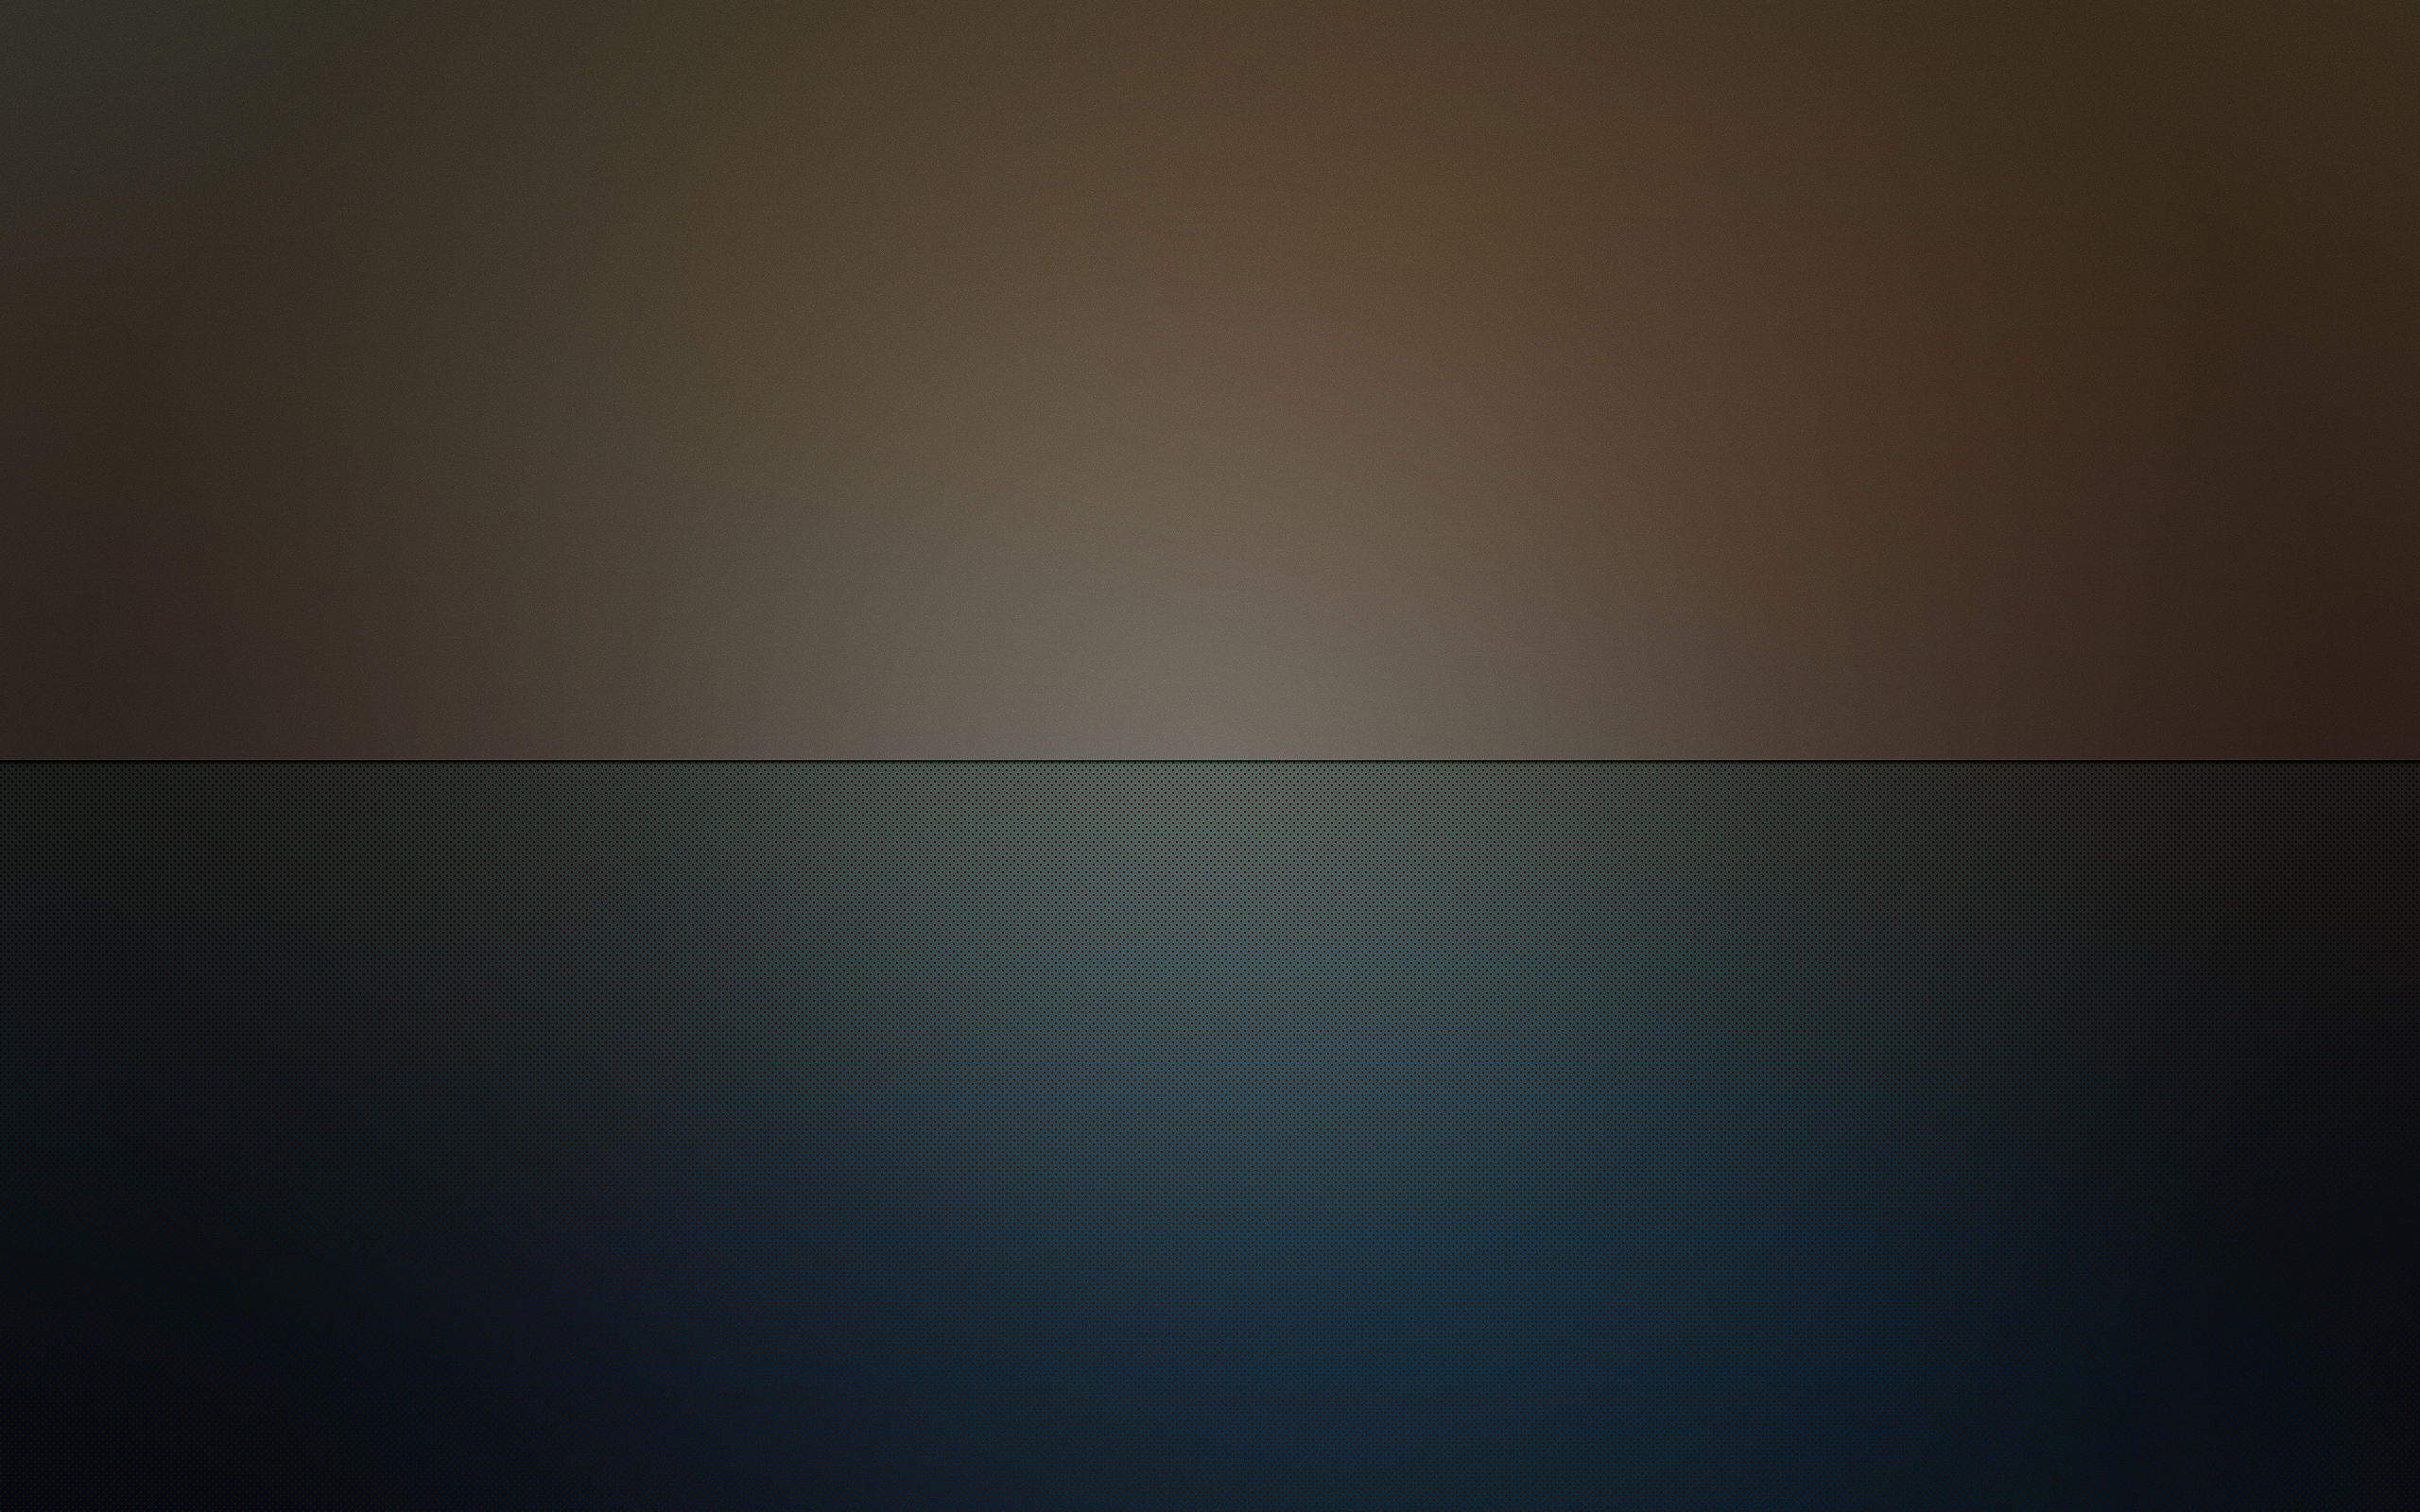 free simple backgrounds 17272